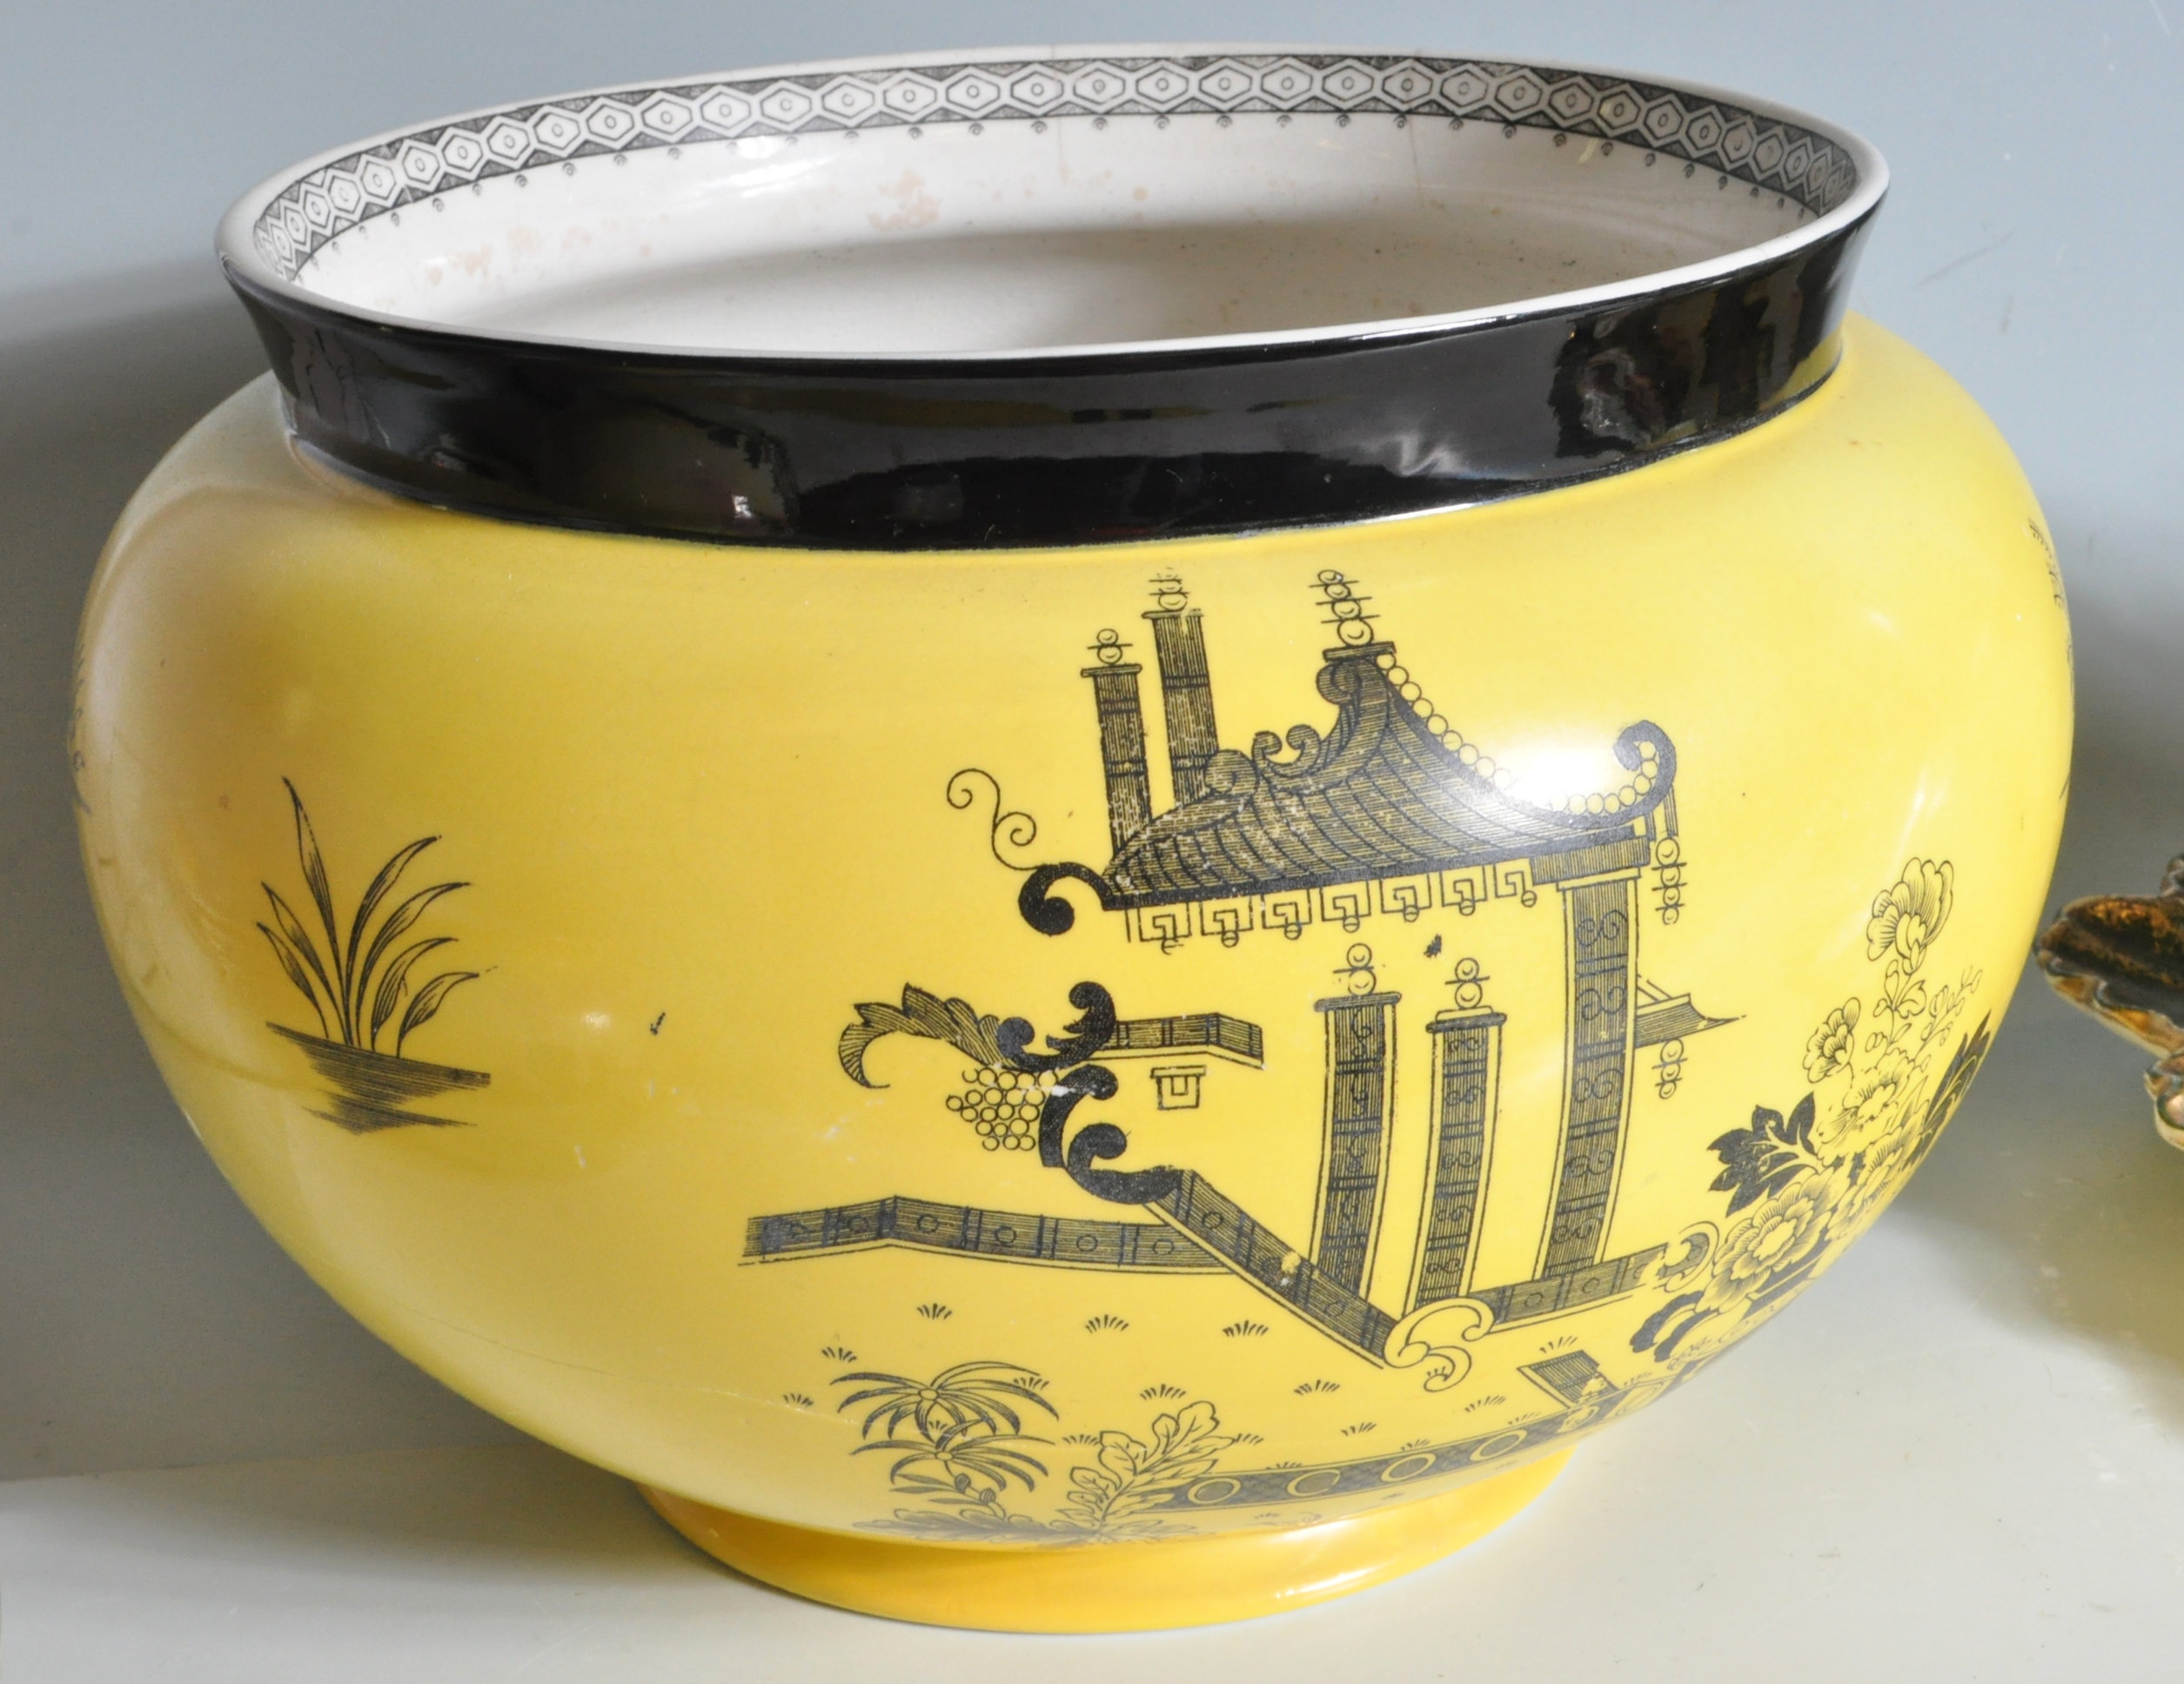 COLLECTION OF VINTAGE 20TH CENTURY CERAMICS - Image 4 of 10